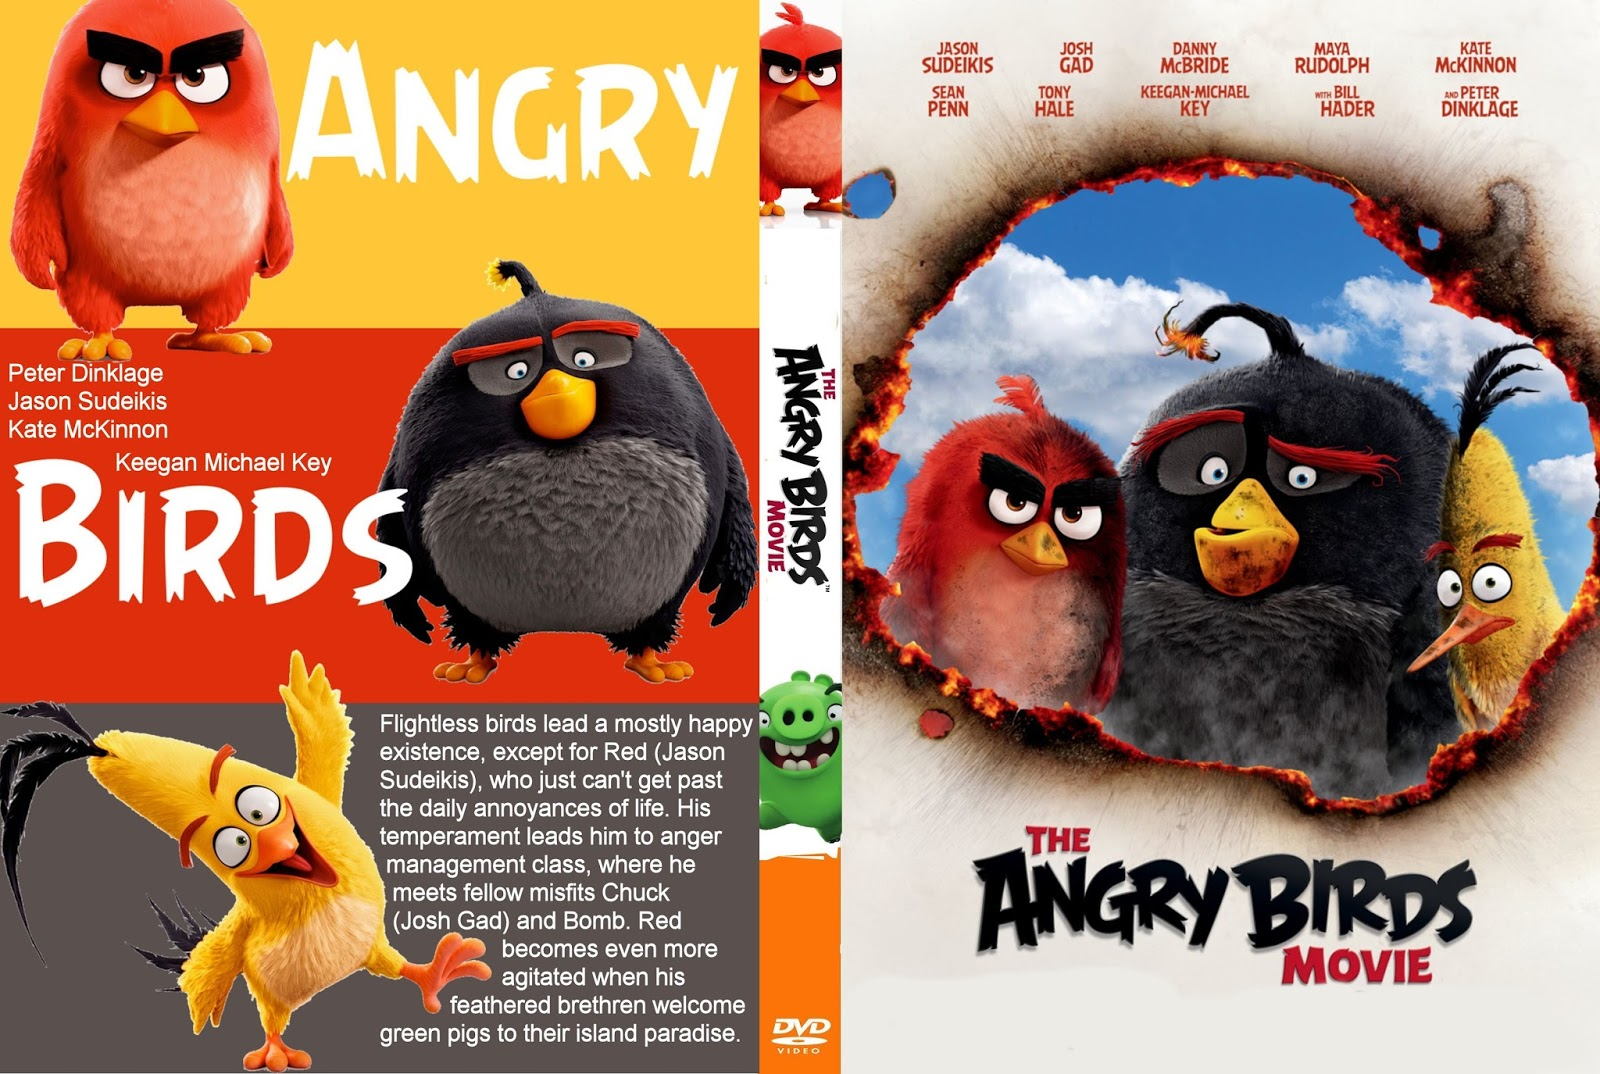 Angry Birds O Filme DVD-R Angry 2BBirds 2B  2BXANDAODOWNLOAD